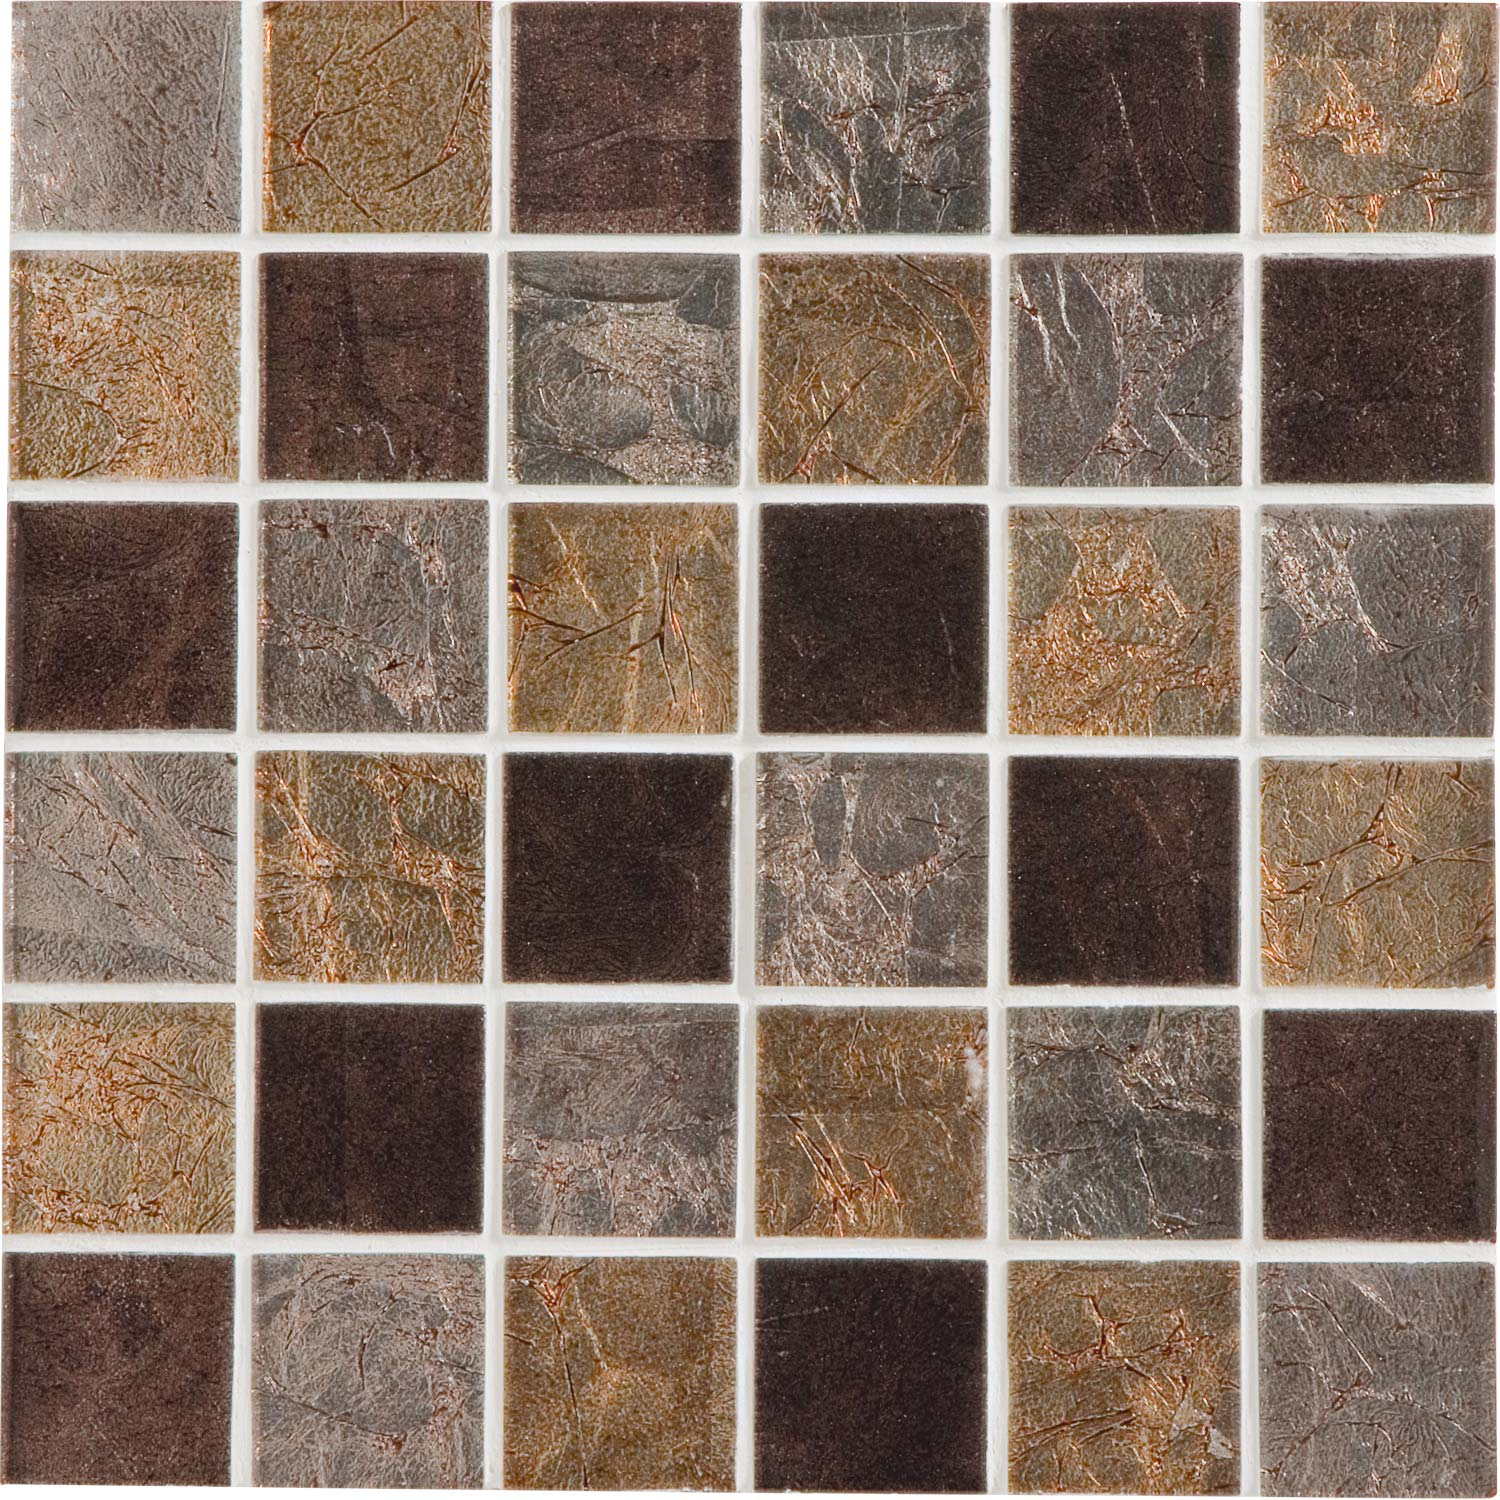 Mosa que glass select mix artens marron 5x5 cm leroy merlin - Mosaique carrelage leroy merlin ...